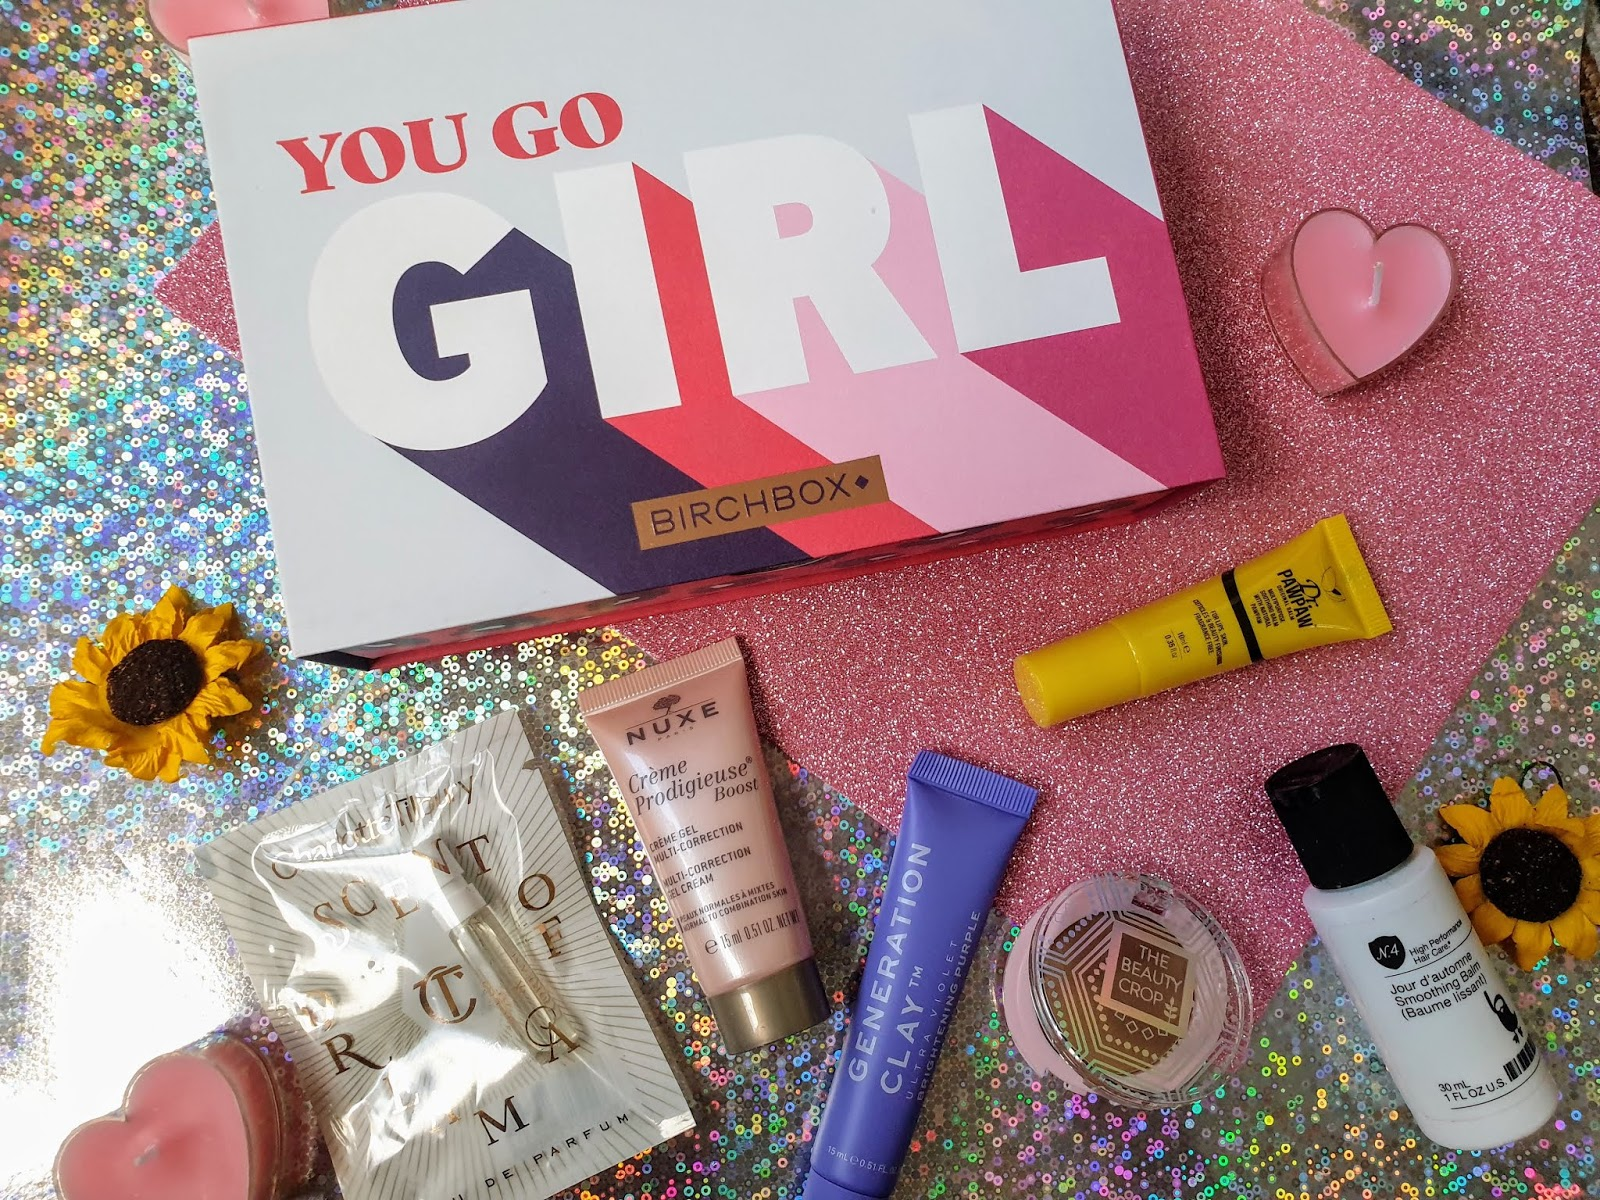 Birchbox March 2019 Unboxing! | Review